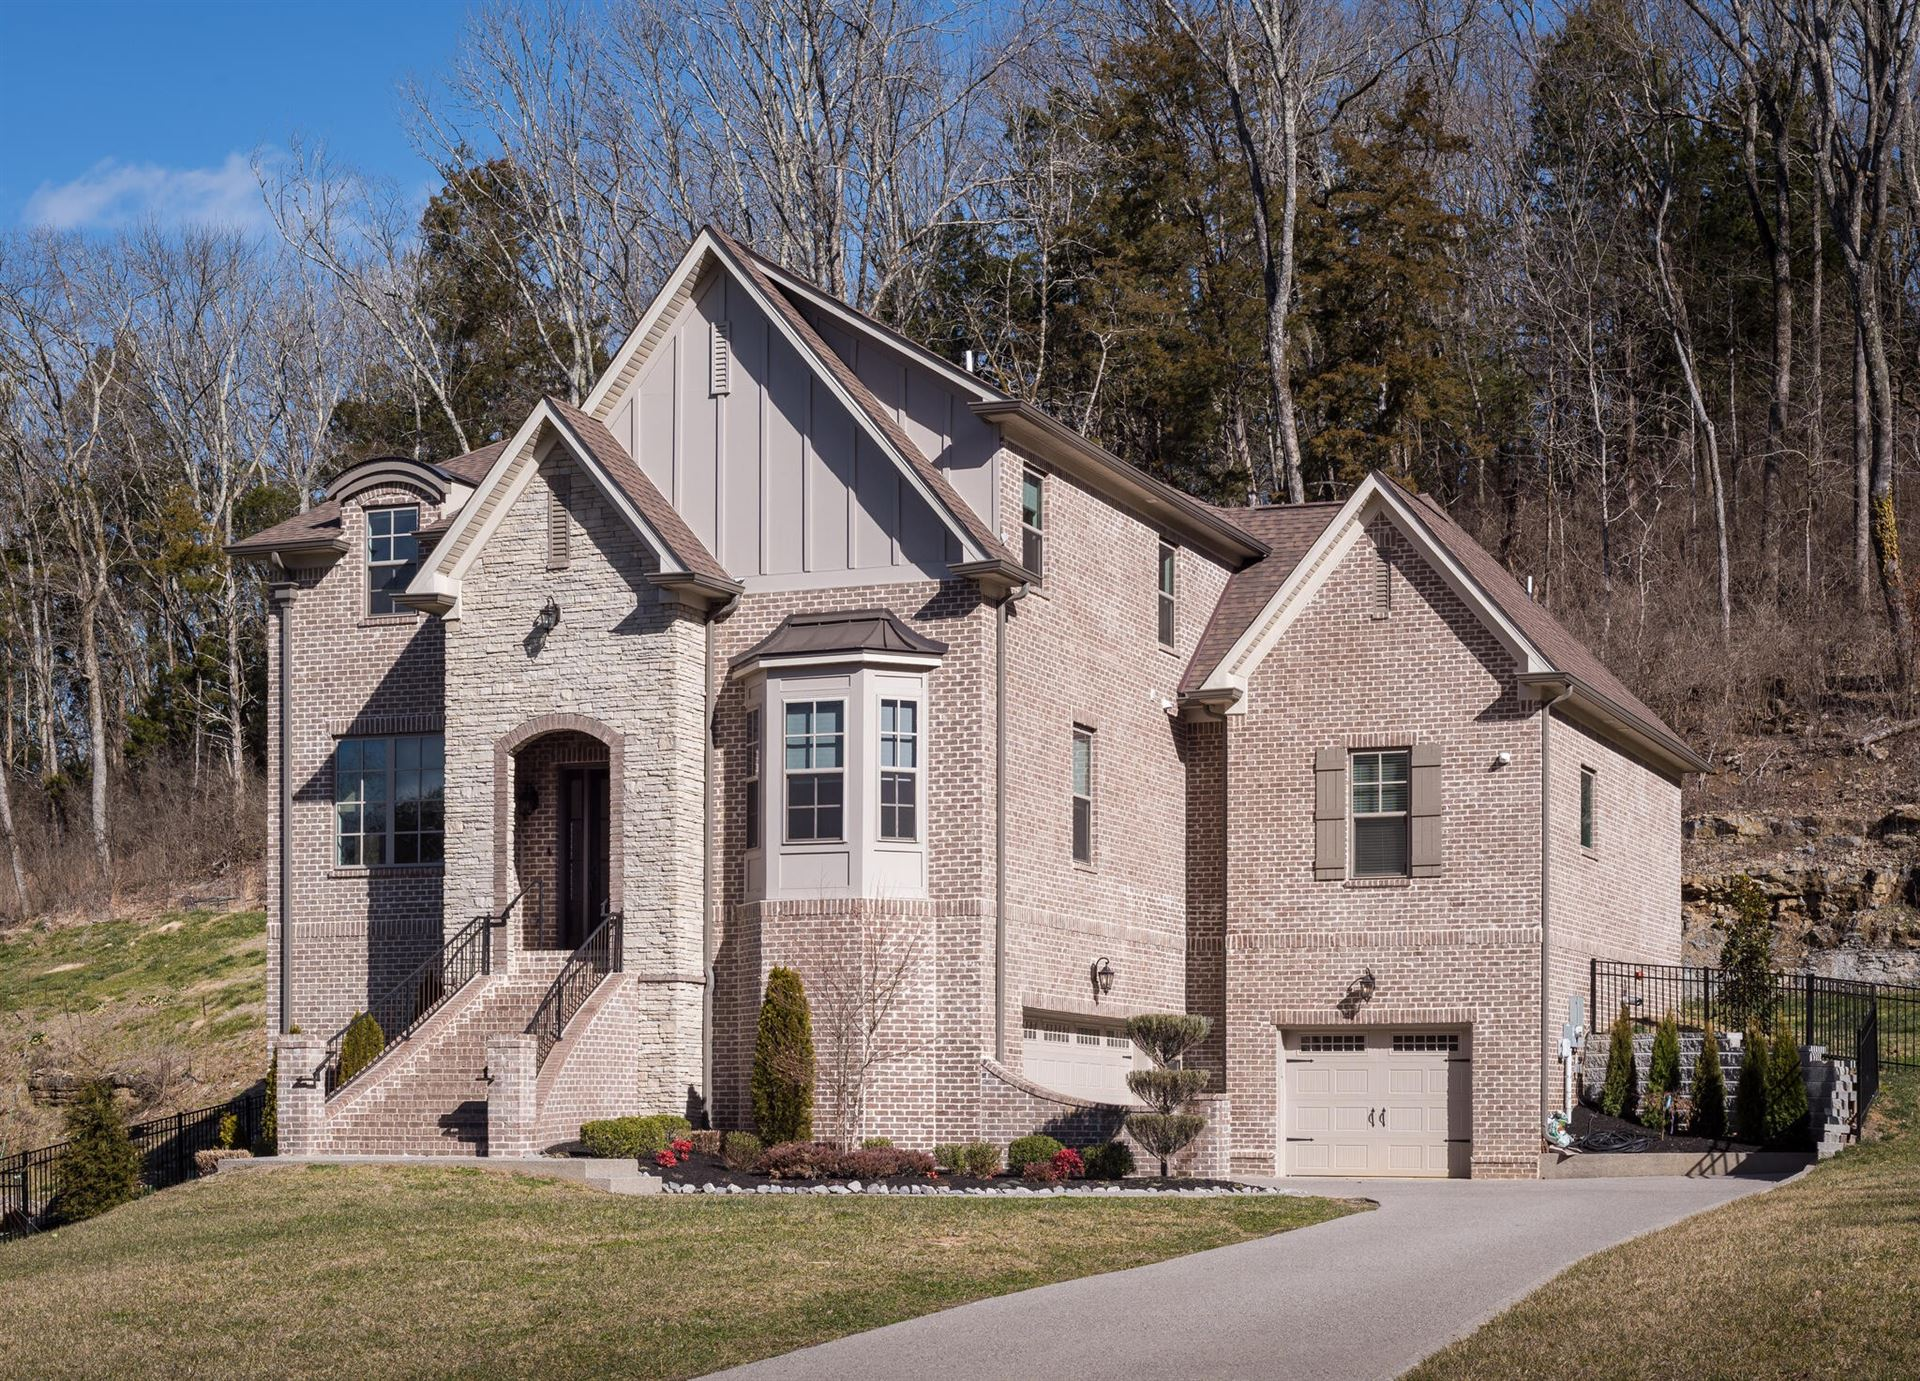 Photo of 6339 Wildwood Dr, Brentwood, TN 37027 (MLS # 2221648)